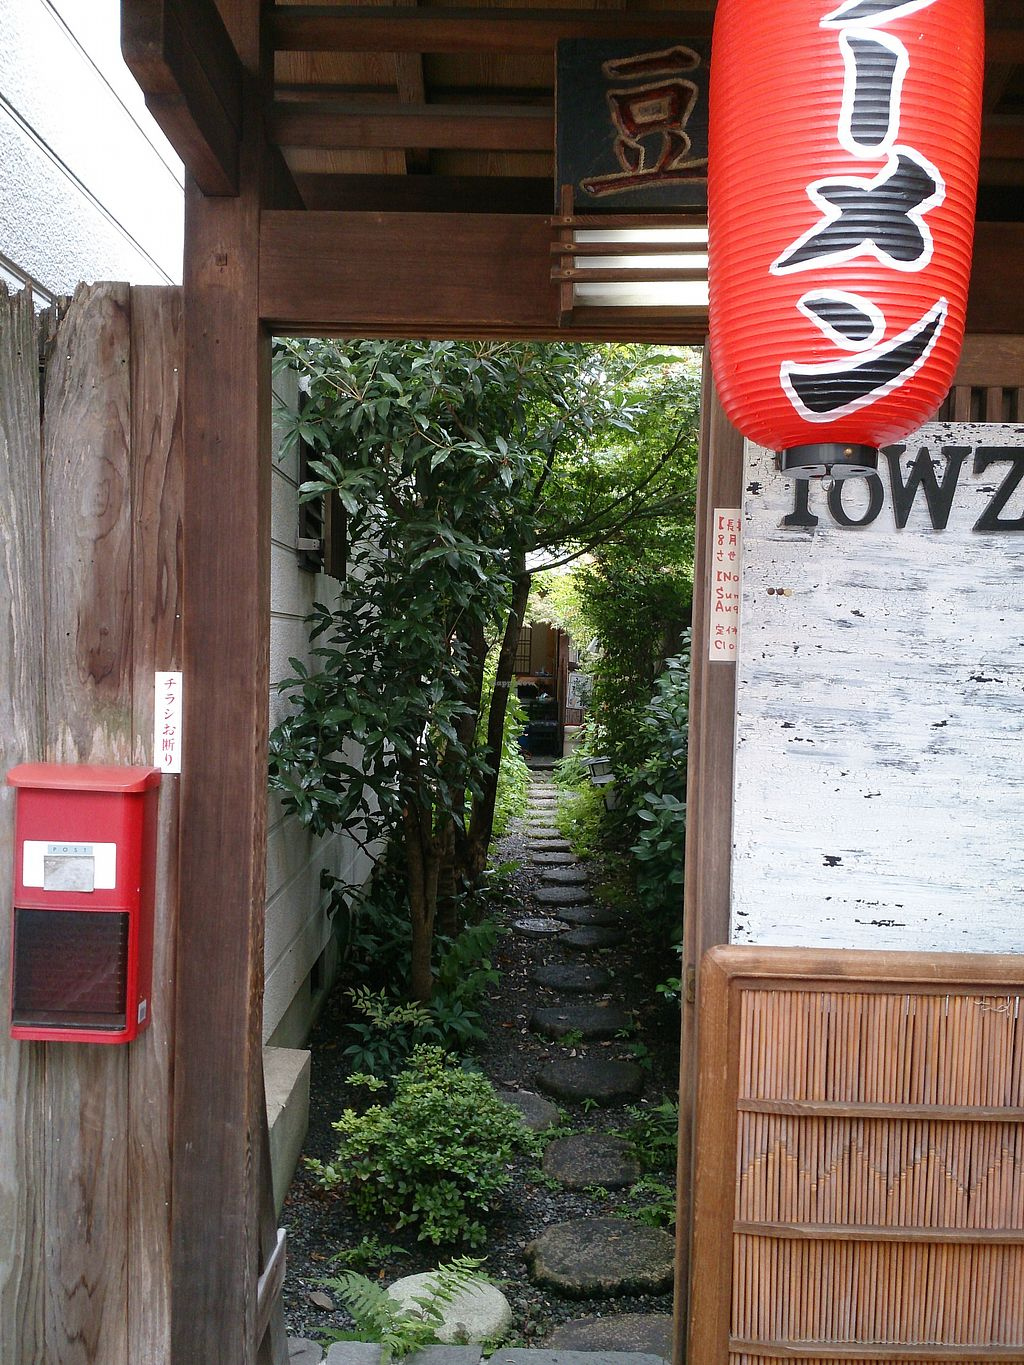 """Photo of Vegan Ramen Towzen  by <a href=""""/members/profile/FoodIsNeverWaste"""">FoodIsNeverWaste</a> <br/>The entrance. It's facing the north side <br/> September 23, 2017  - <a href='/contact/abuse/image/76999/307353'>Report</a>"""